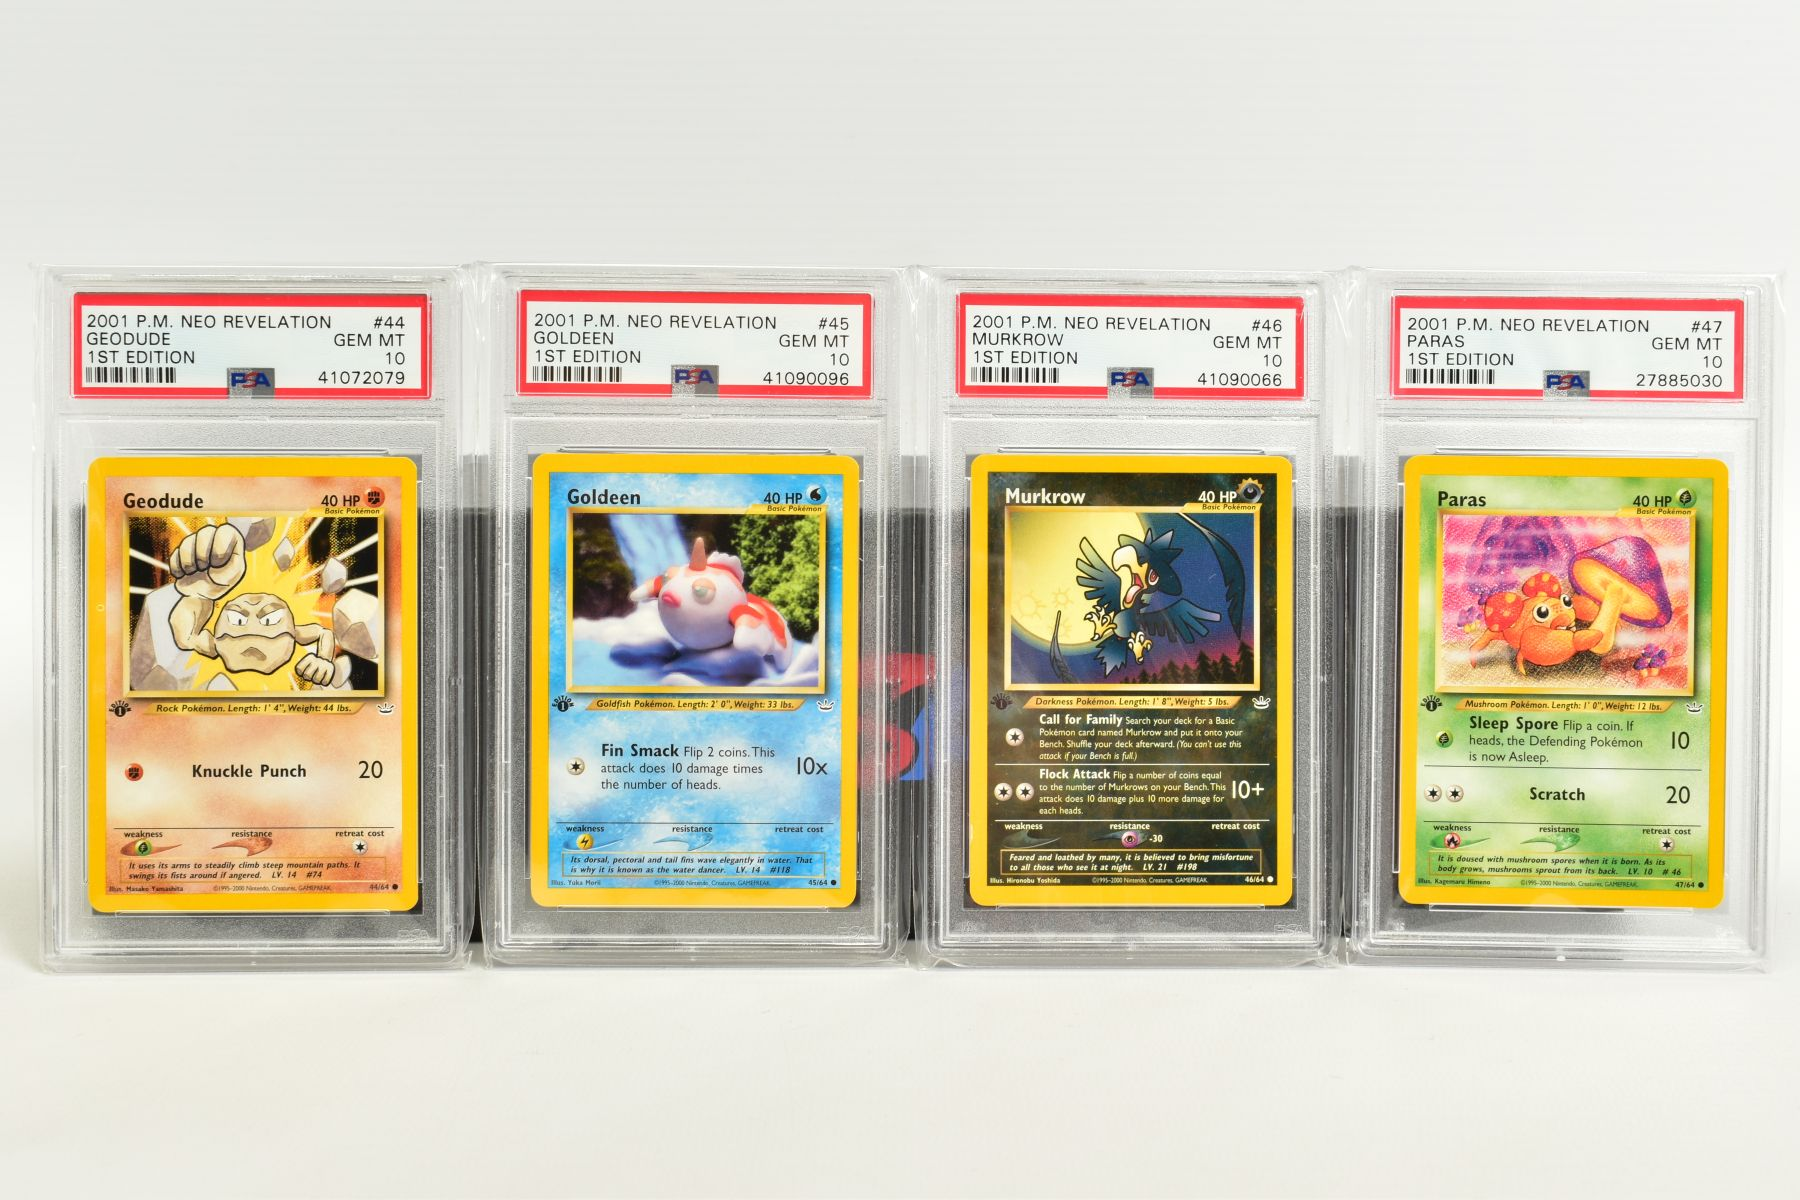 A QUANTITY OF PSA GRADED POKEMON 1ST EDITION NEO REVELATION SET CARDS, all are graded GEM MINT 10 - Image 10 of 14